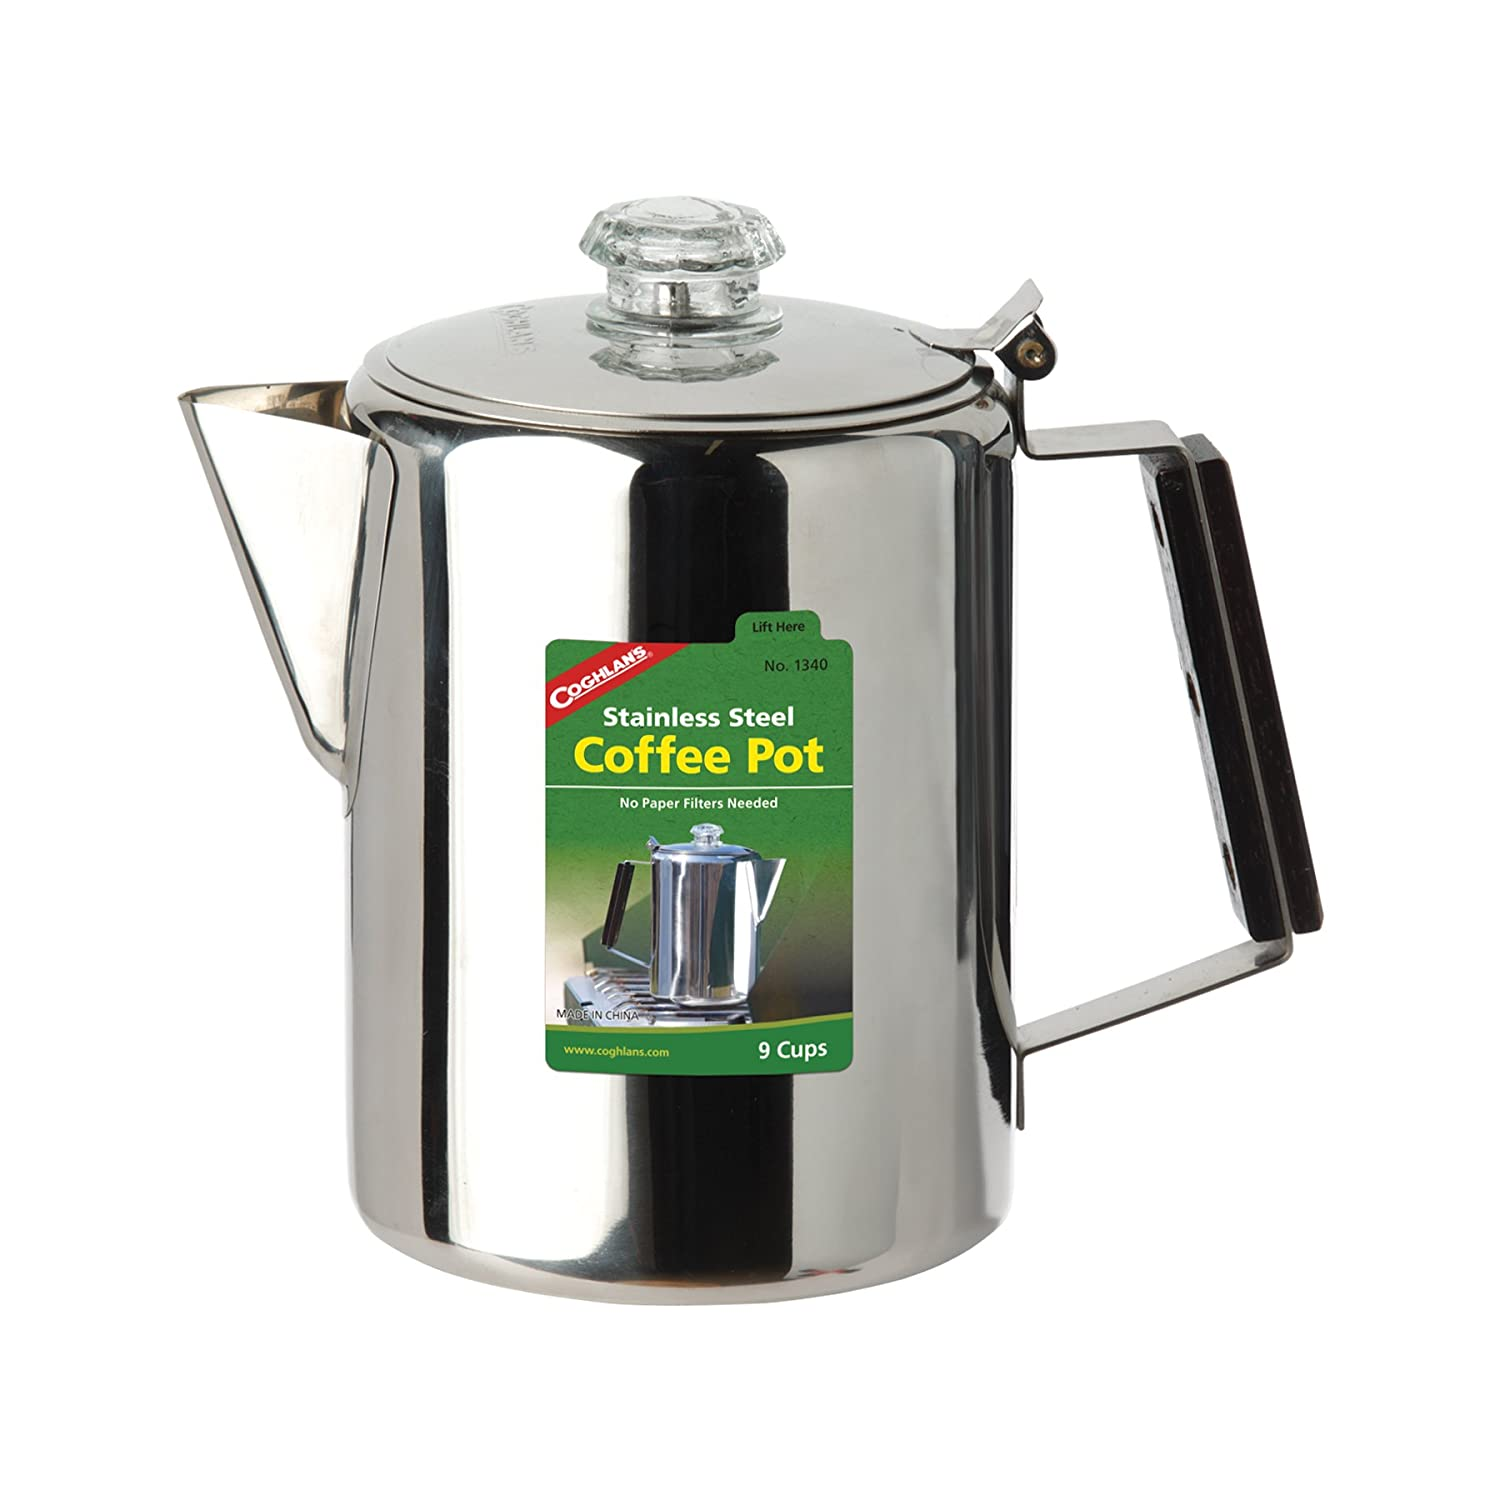 Amazon.com: De Coghlan 9-Cup Acero Inoxidable Cafetera ...